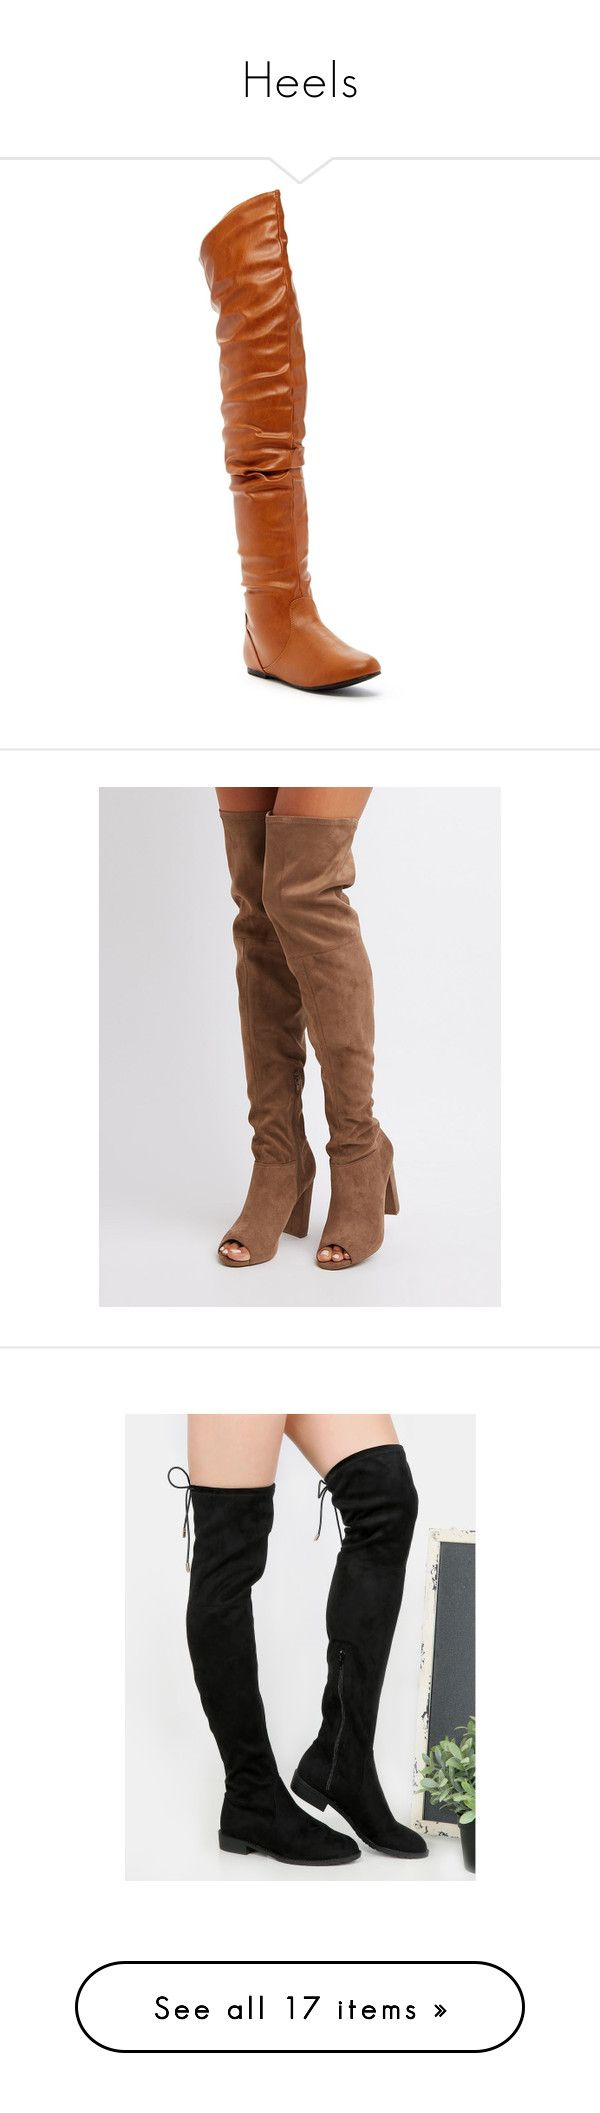 """Heels"" by devonna-bell ❤ liked on Polyvore featuring shoes, boots, over-the-knee boots, tan, fake leather boots, rounded toe boots, over-knee boots, synthetic leather boots, tan boots and taupe"